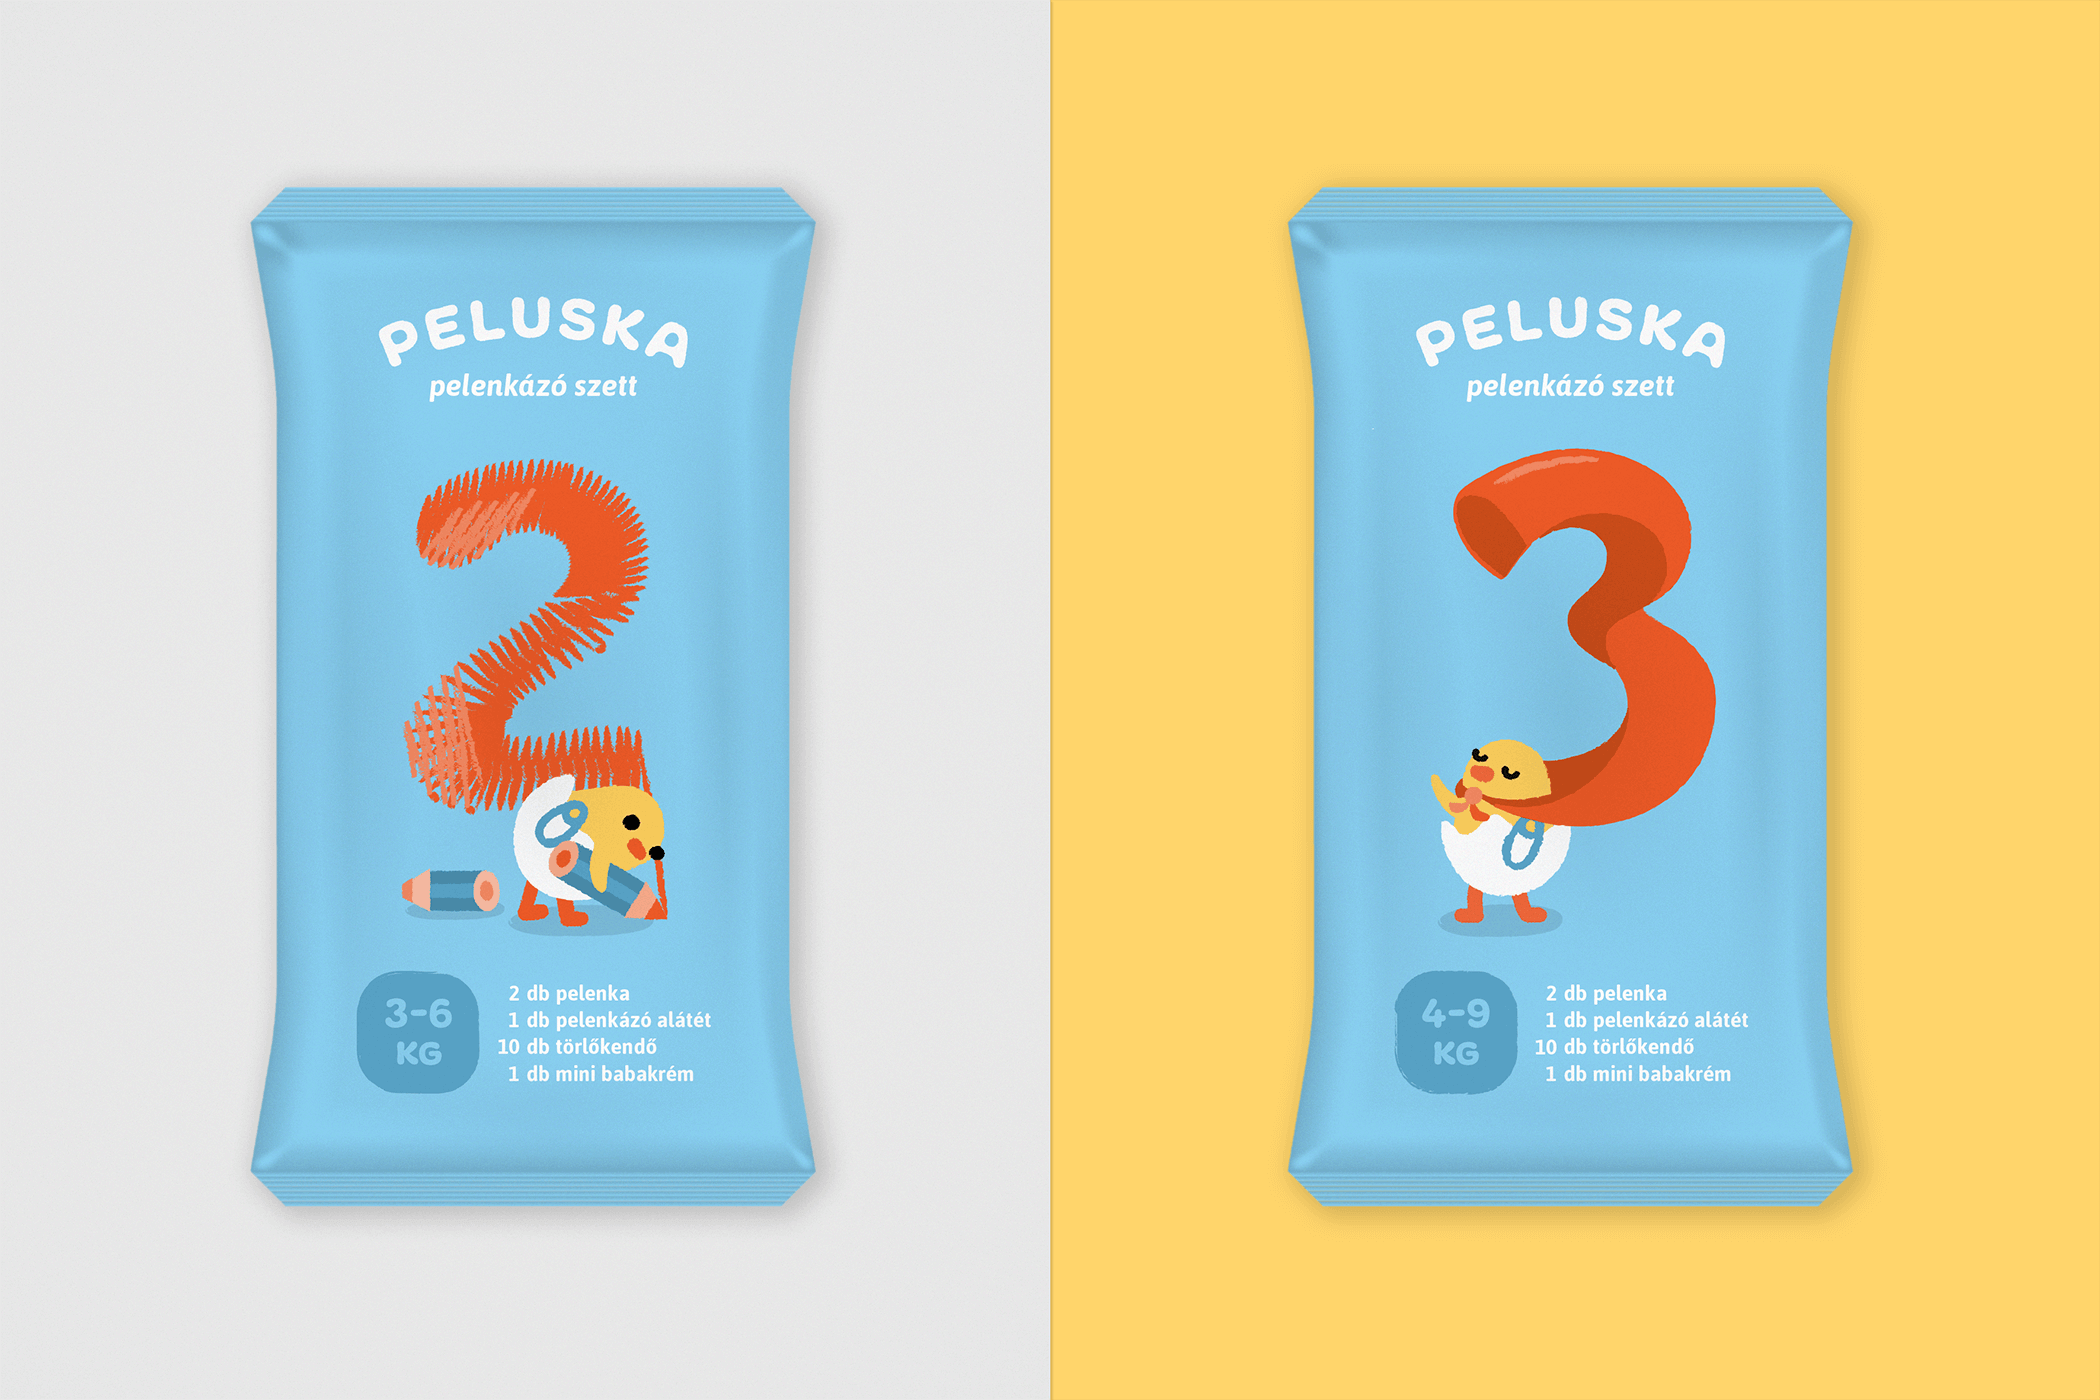 Diaper packaging for 2 and 3